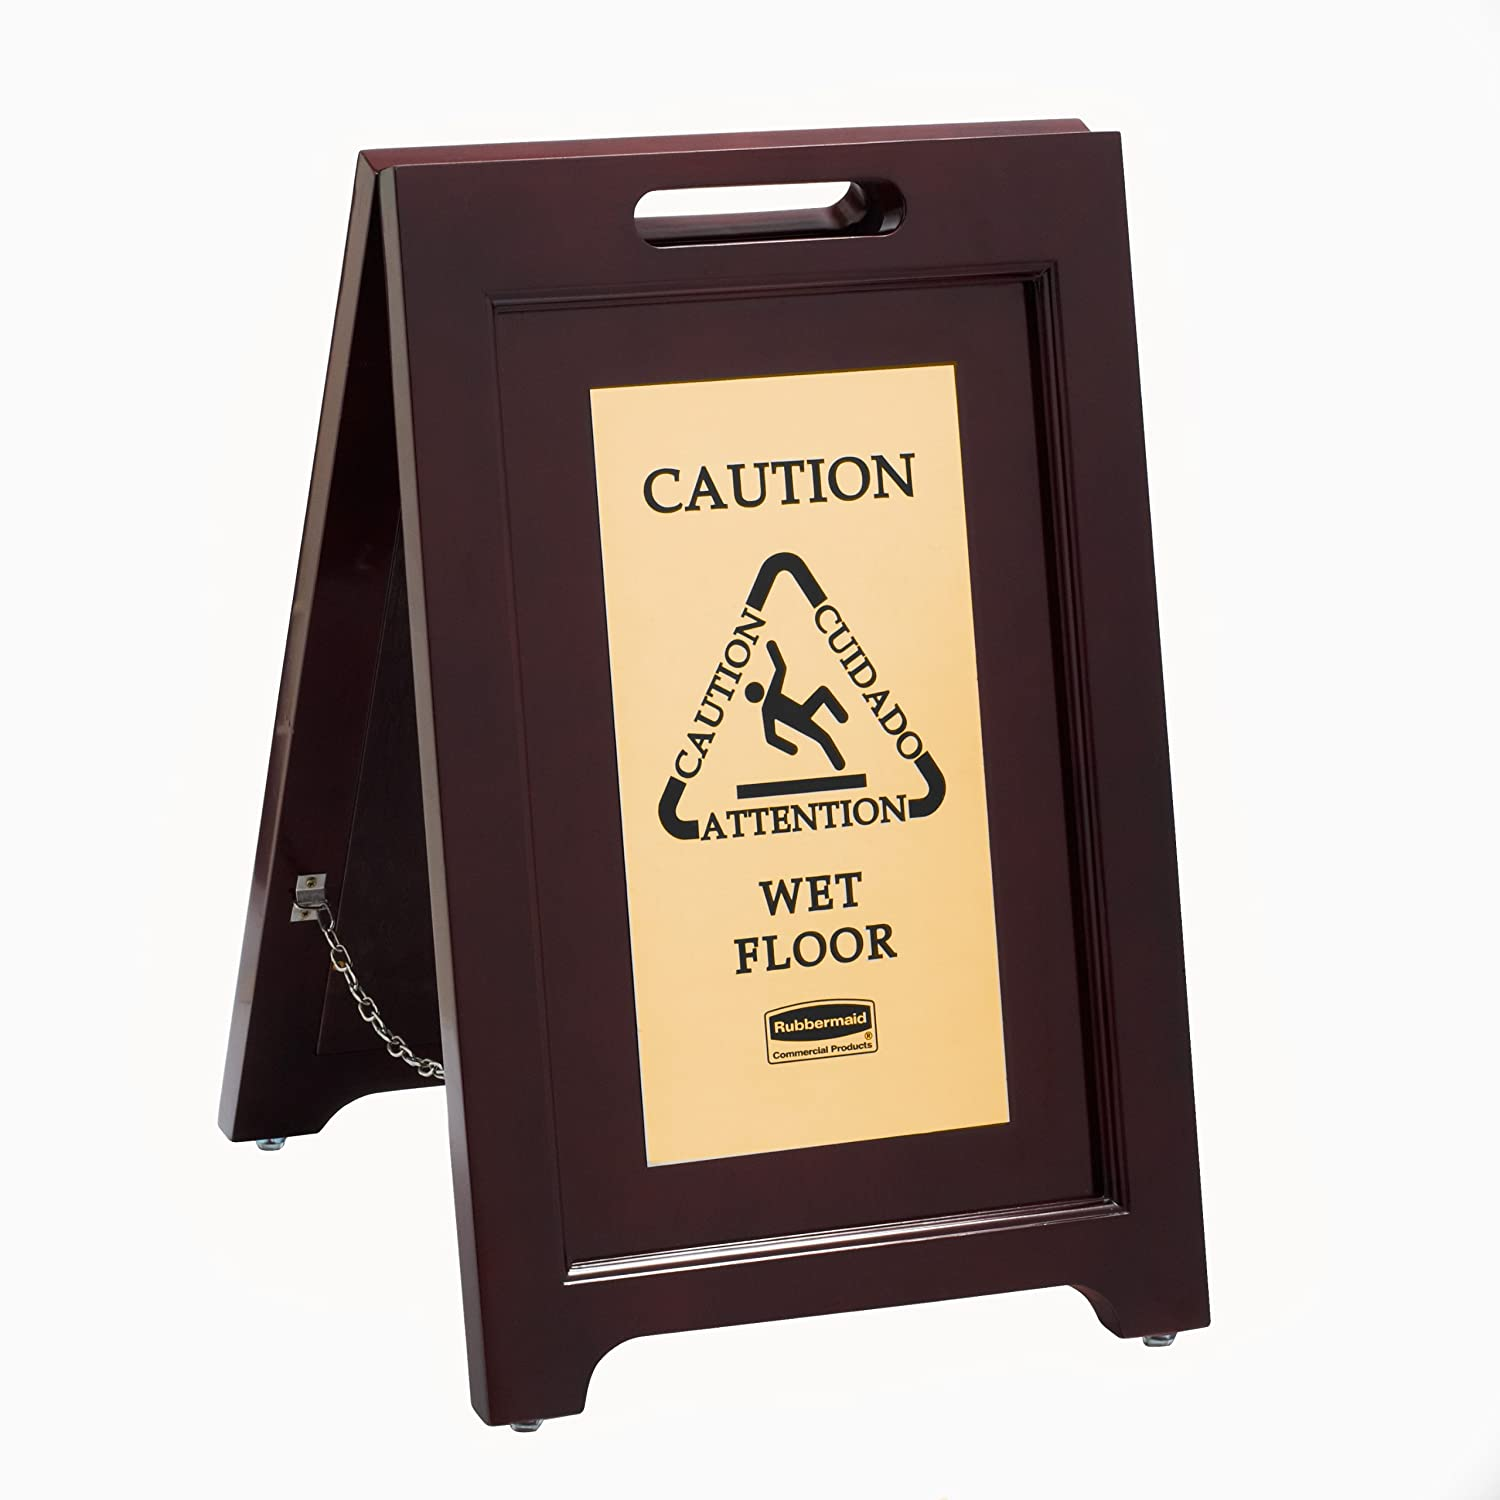 """Rubbermaid Commercial Executive Series 22 Inch Wooden Multilingual """"Caution"""" Safety Wet Floor Sign, 2-Sided, Gold (1867507)"""